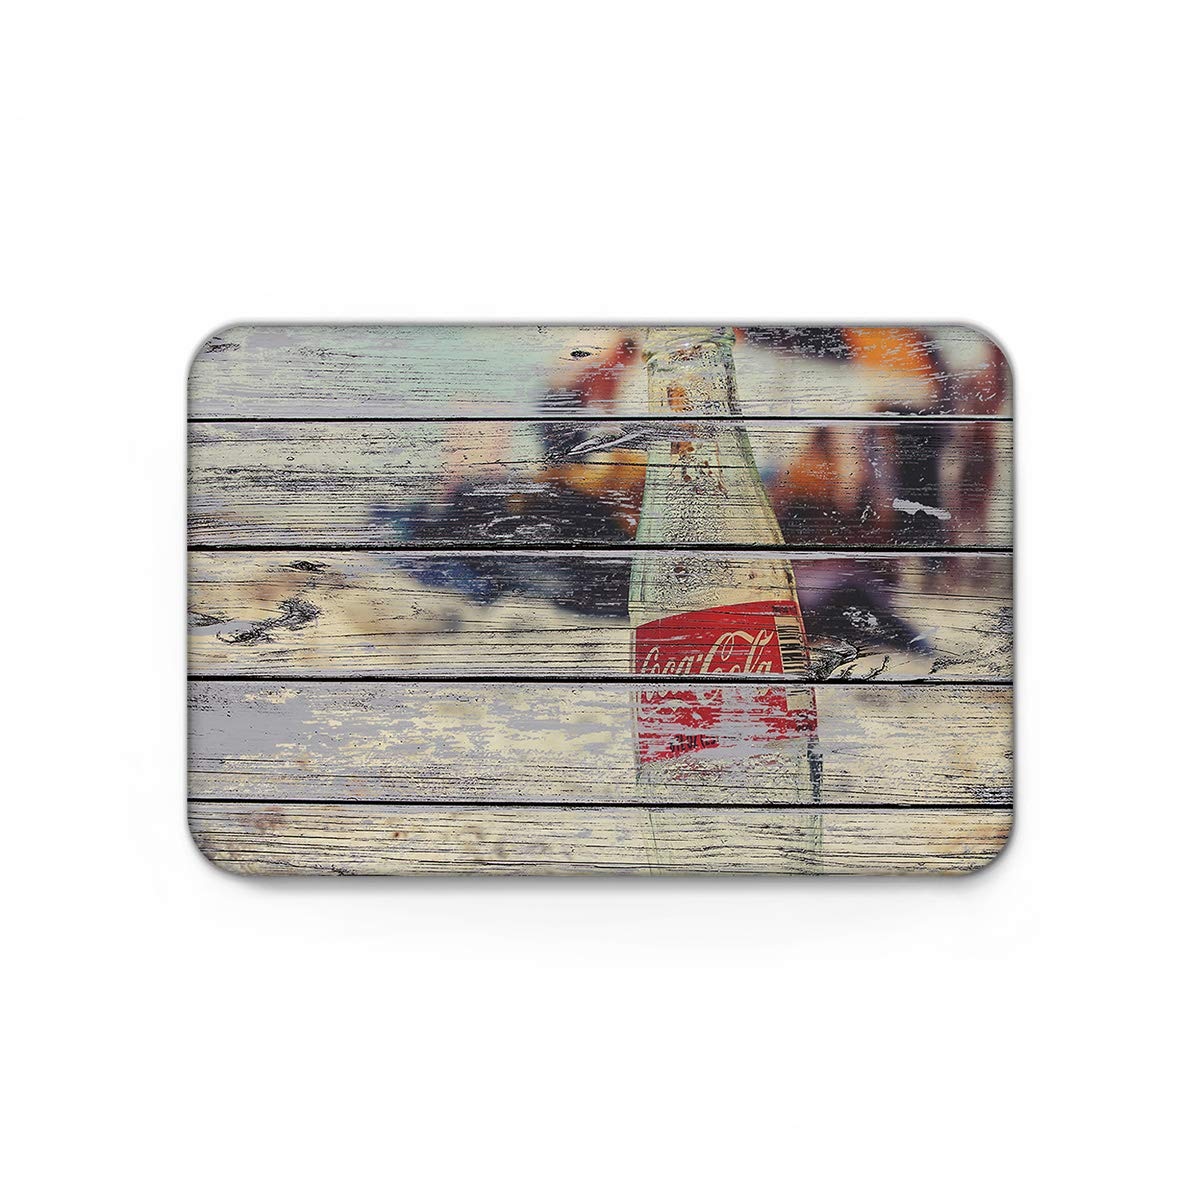 Retro Wood Grain Pattern of Coke Mat